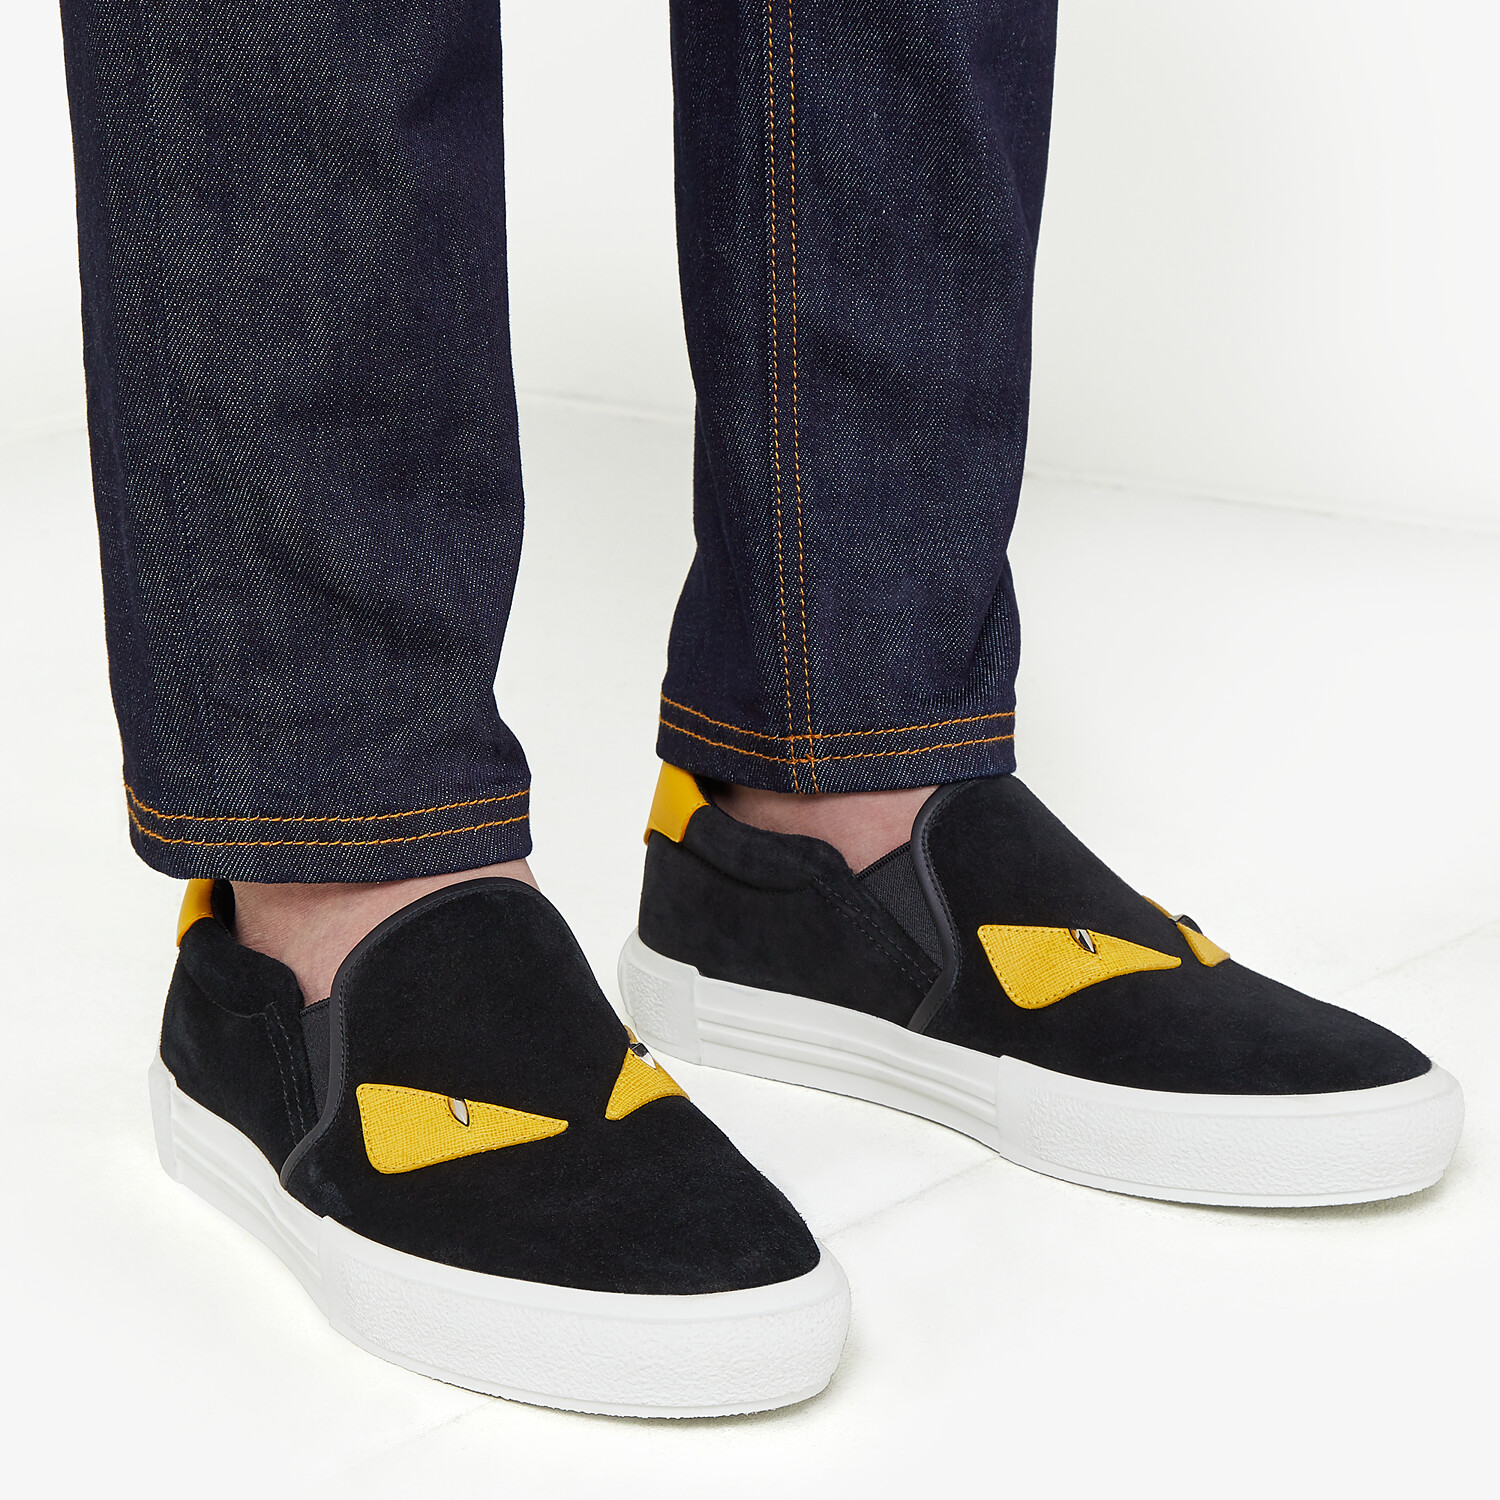 FENDI SNEAKER - Black leather slip-on - view 5 detail